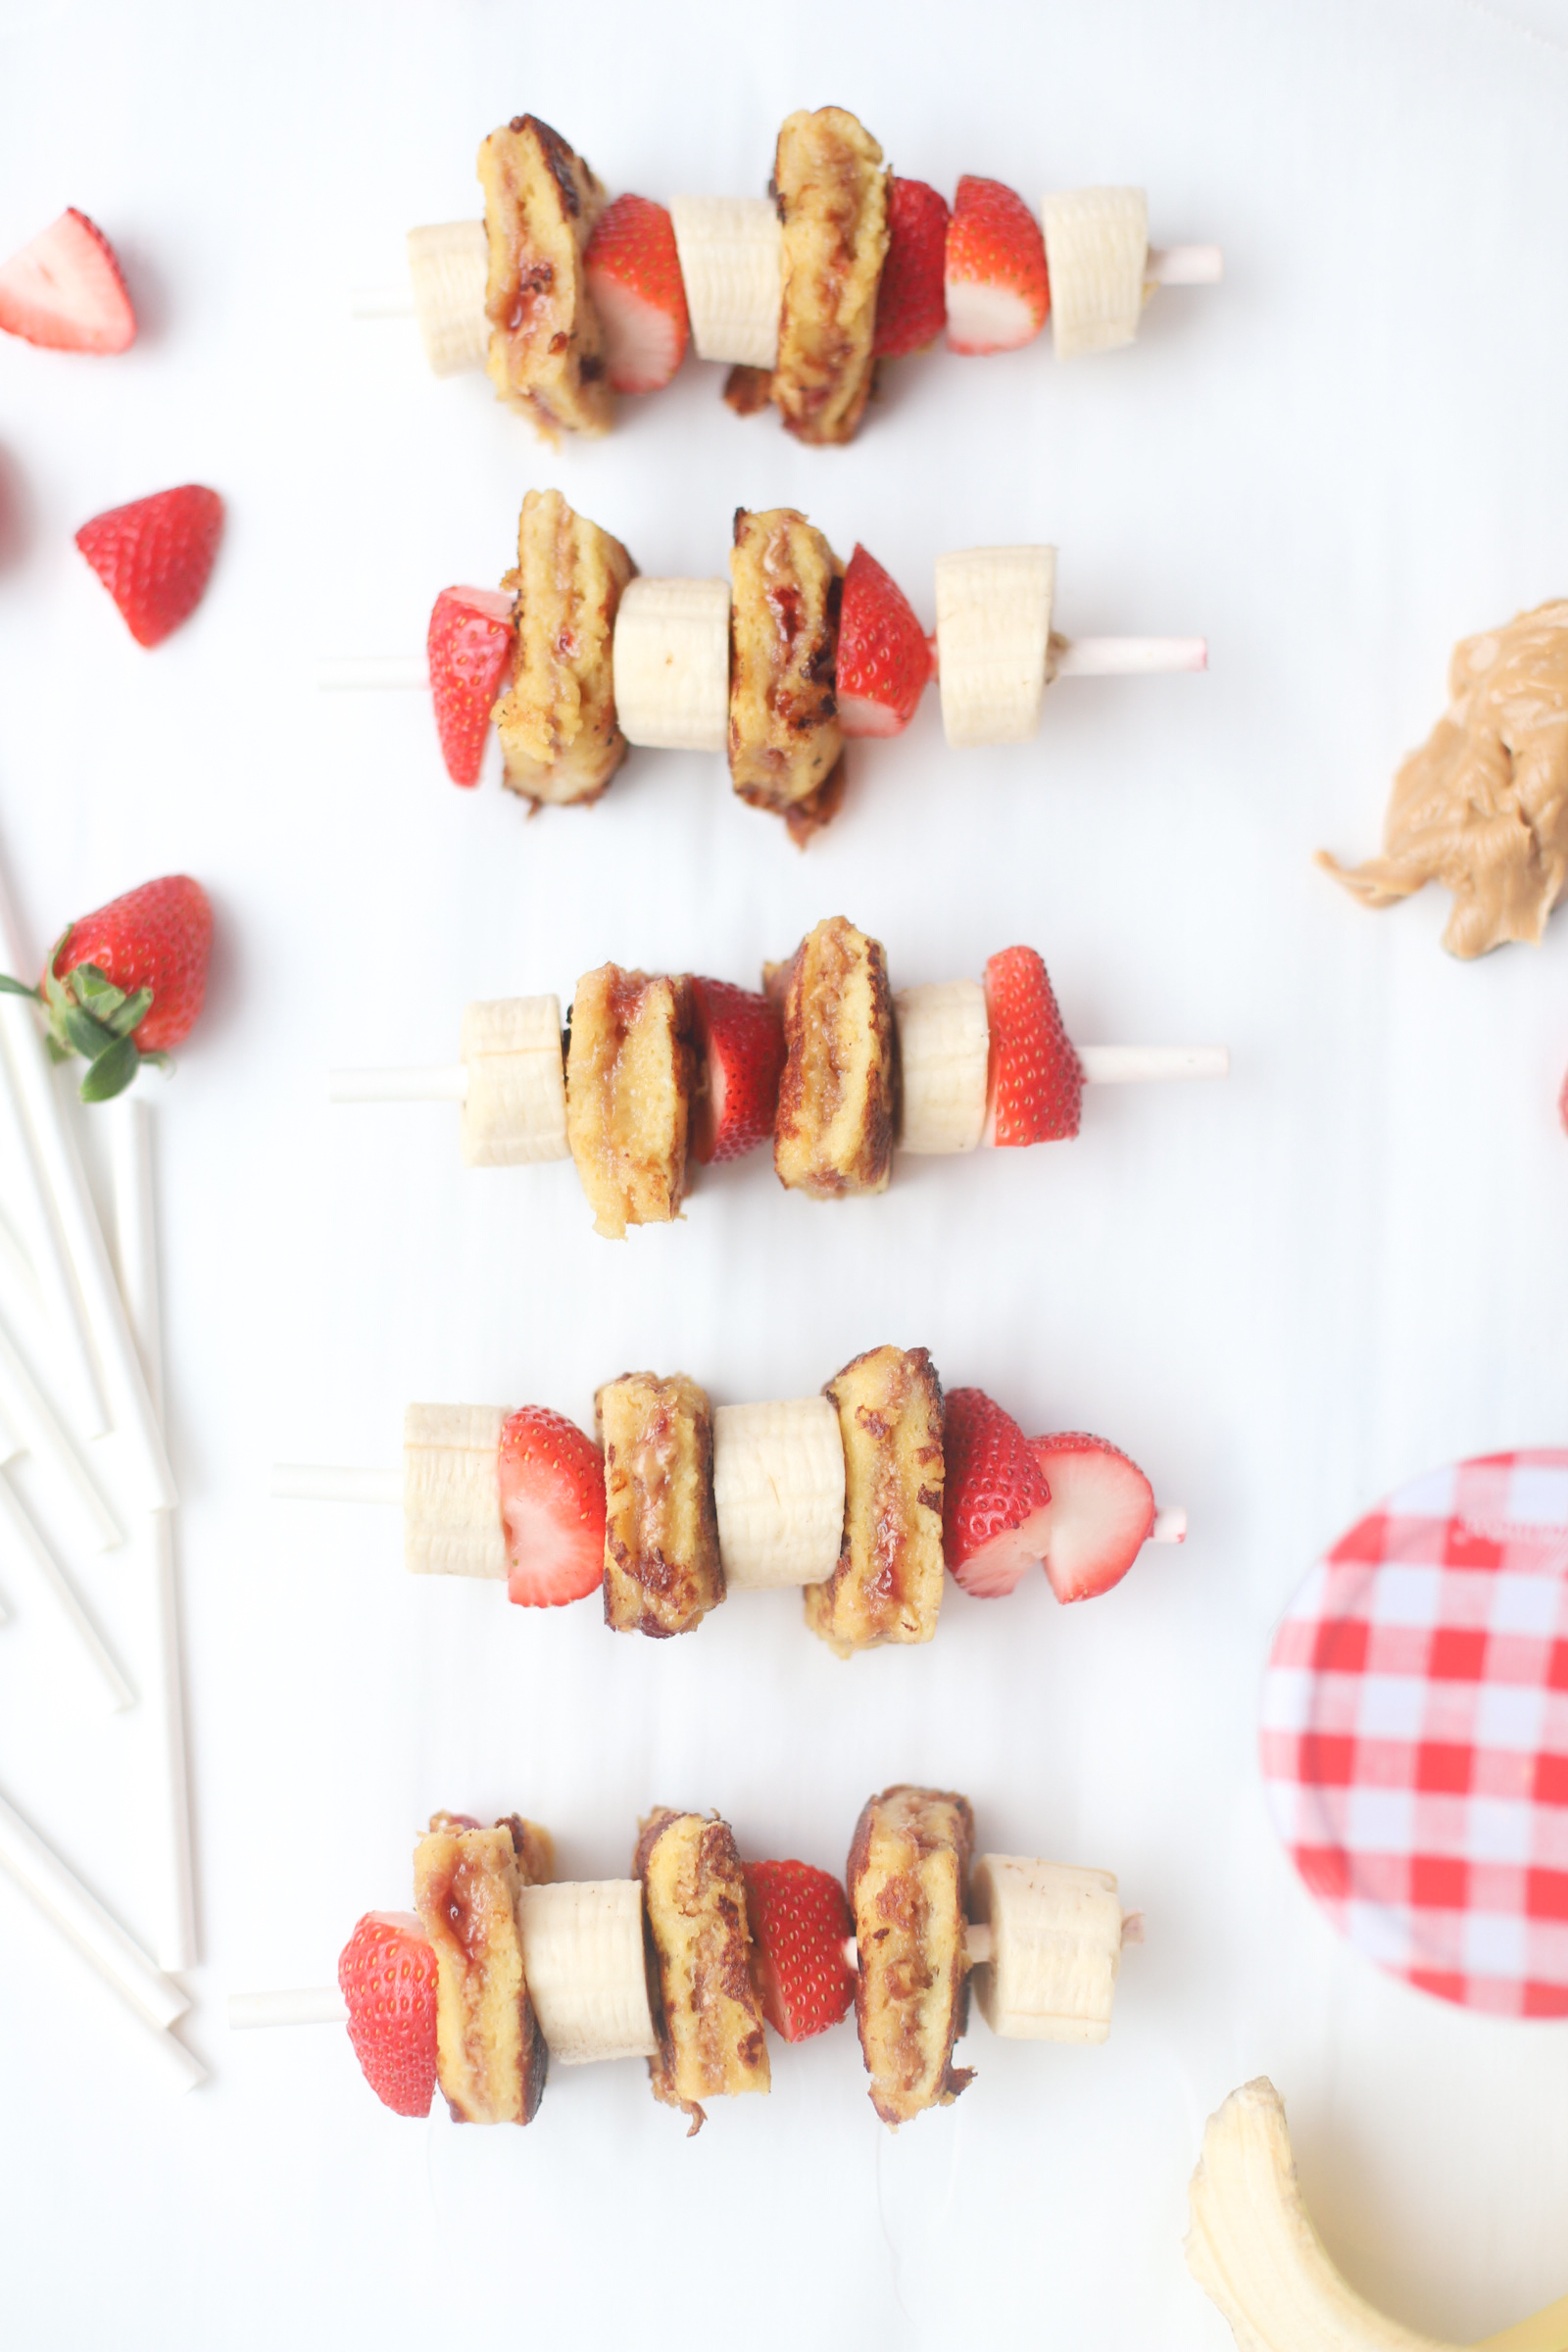 Make these adorable and decadent stuffed PB&J French Toast Kabobs for your next brunch. Peanut butter and jelly crossed with French toast never tasted so good! Click through for the recipe. | glitterinc.com | @glitterinc